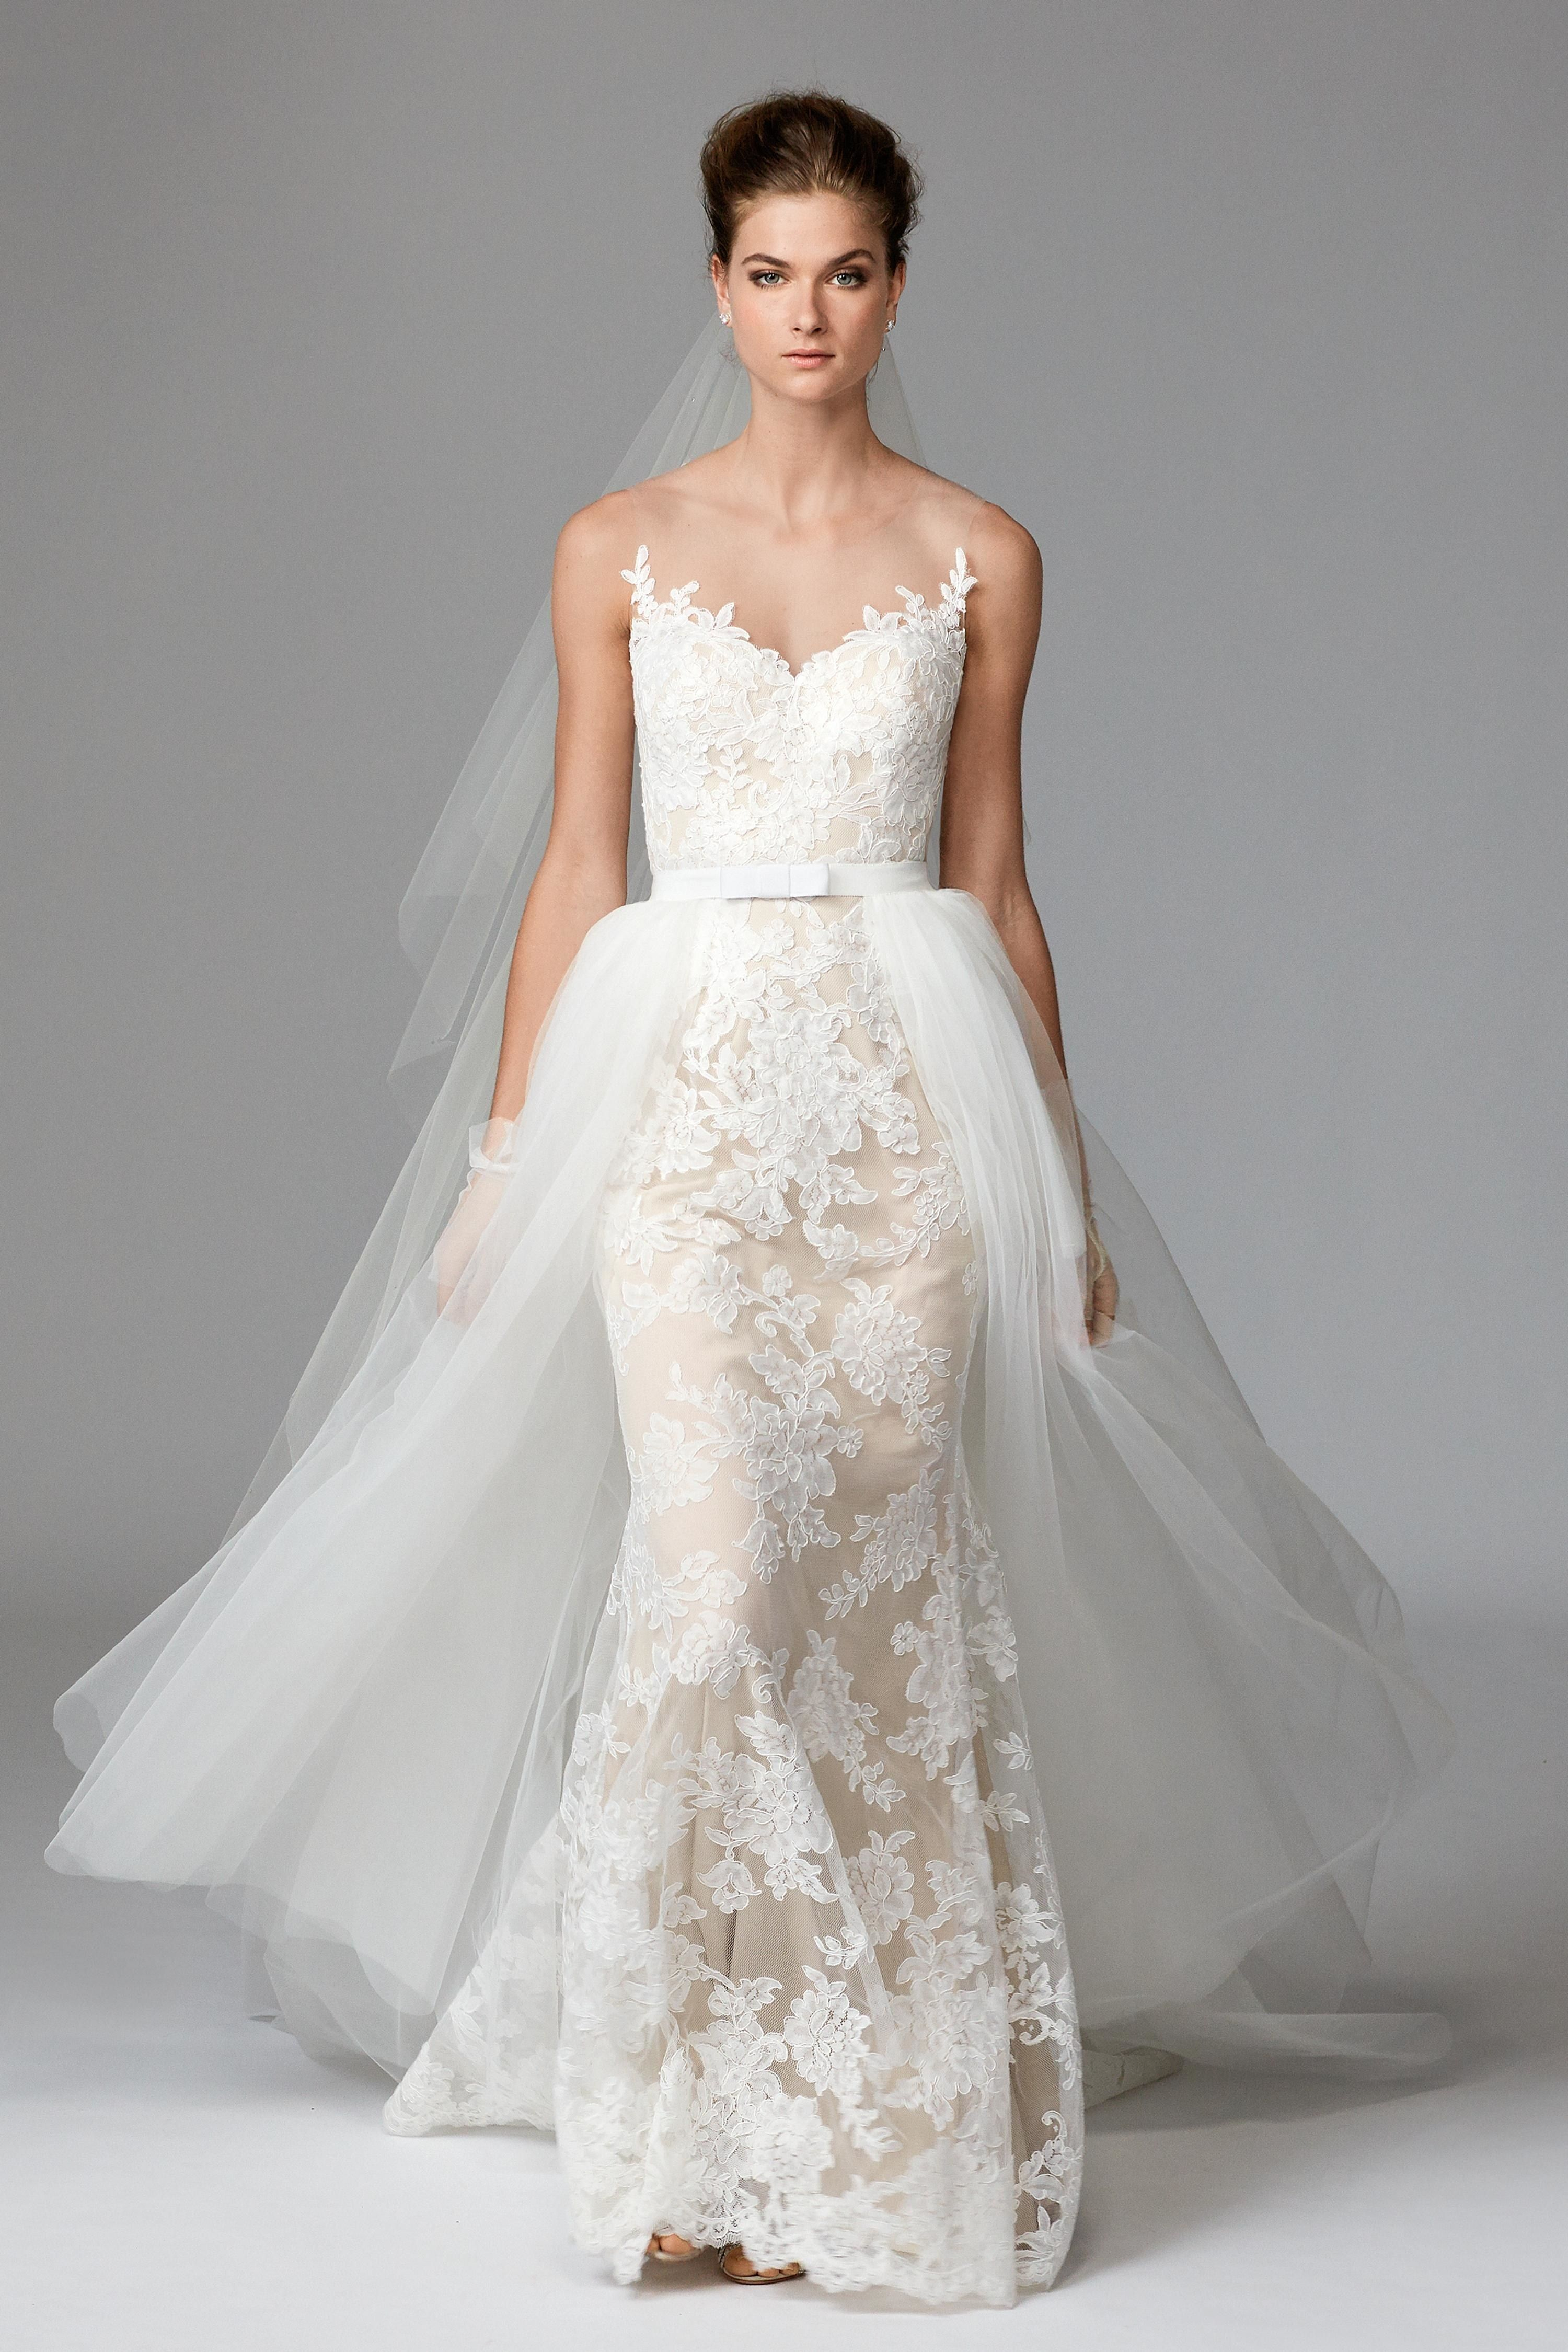 There were loads of gorgeous wedding dresses on last seasons there were loads of gorgeous wedding dresses on last seasons runways that spring or summer brides ombrellifo Image collections